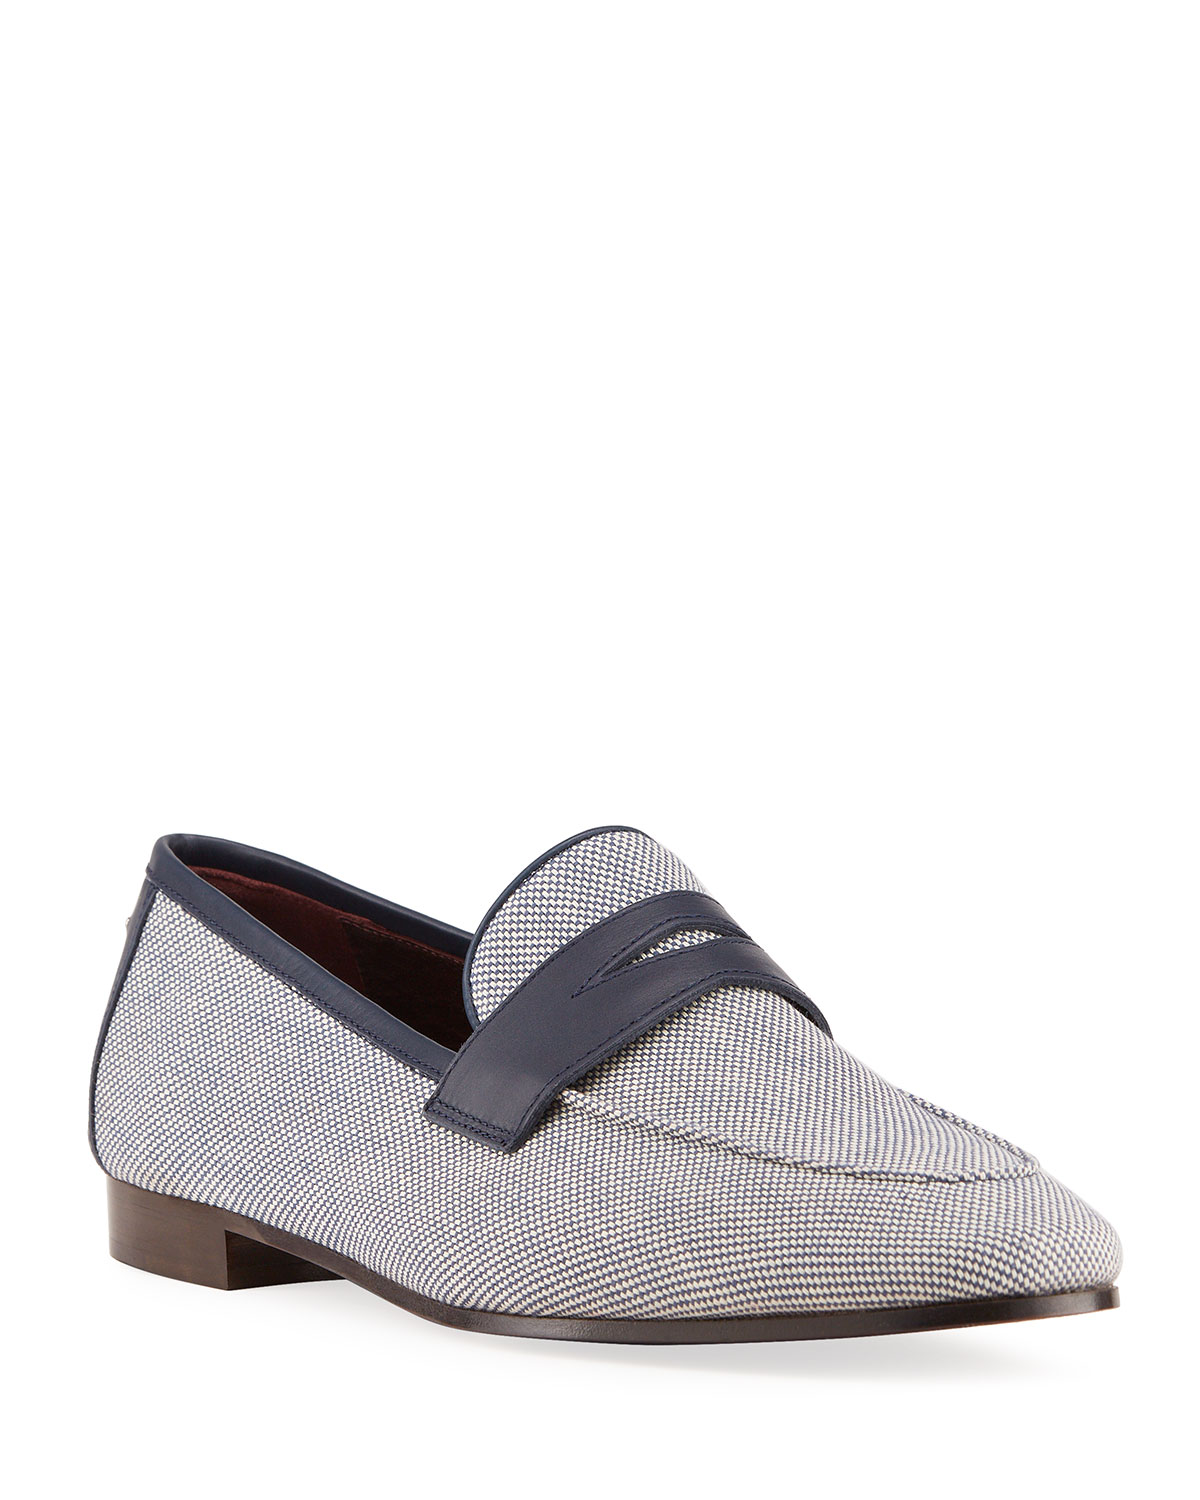 Bougeotte BICOLOR LINEN PENNY LOAFERS